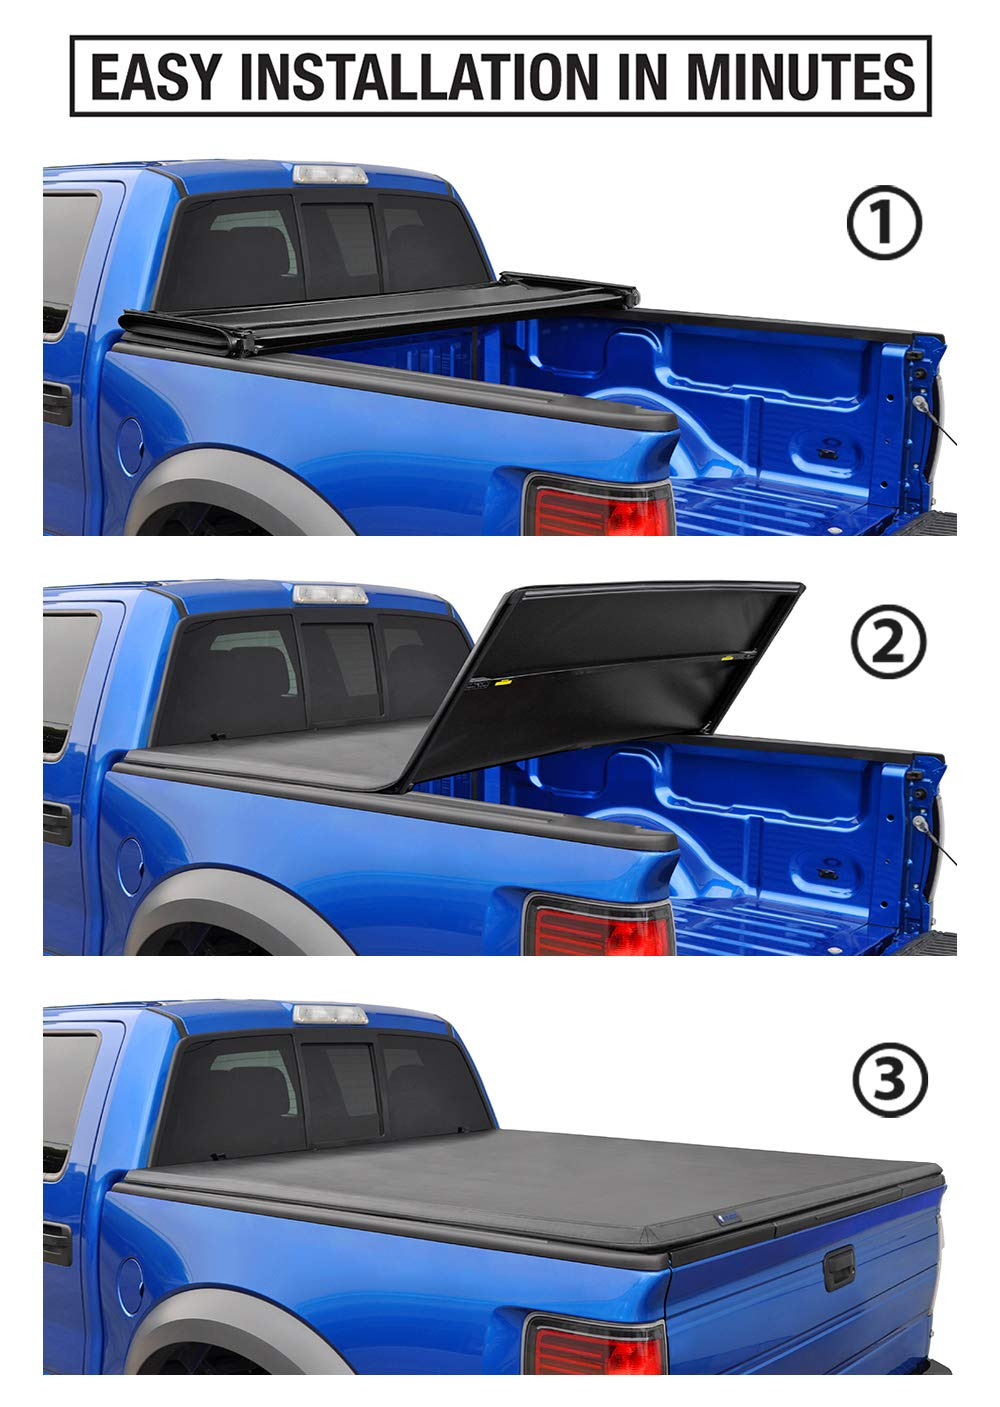 Tyger Auto T3 Tri-Fold Truck Tonneau Cover TG-BC3F1043 Works with 2015-2019 Ford F-150 | Styleside 8' Bed by Tyger Auto (Image #6)